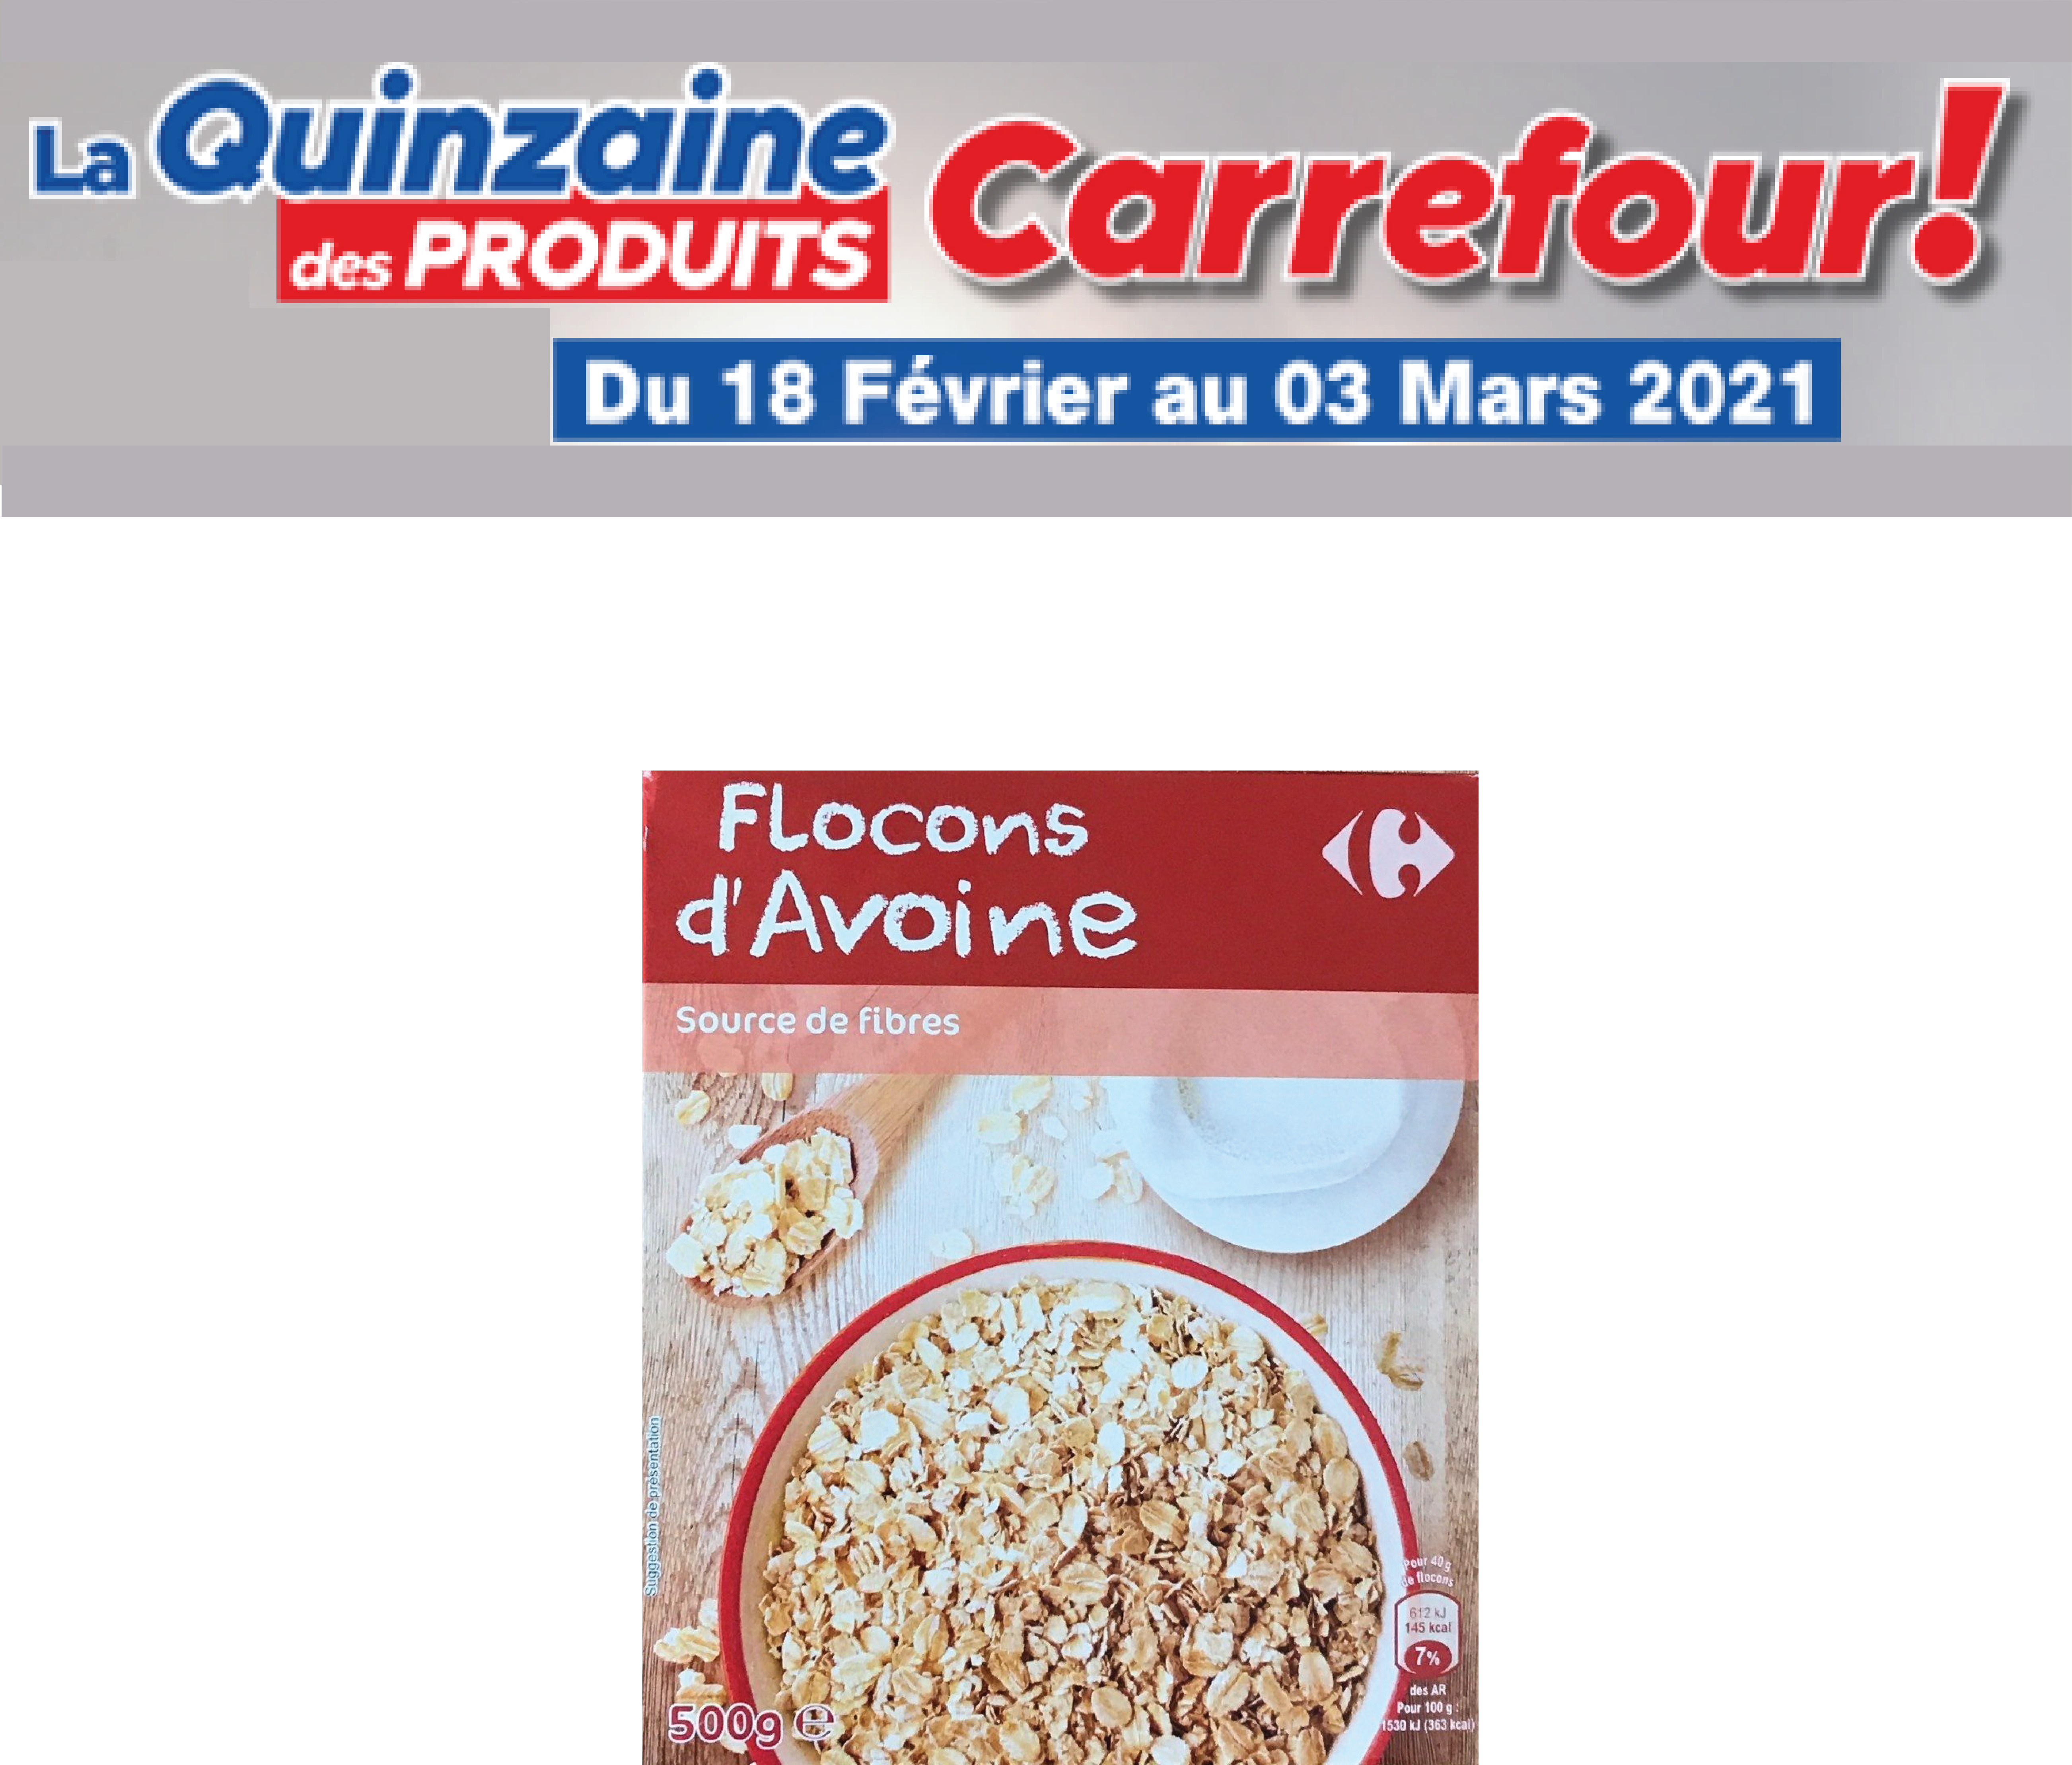 Flocons d'avoine Carrefour 500g